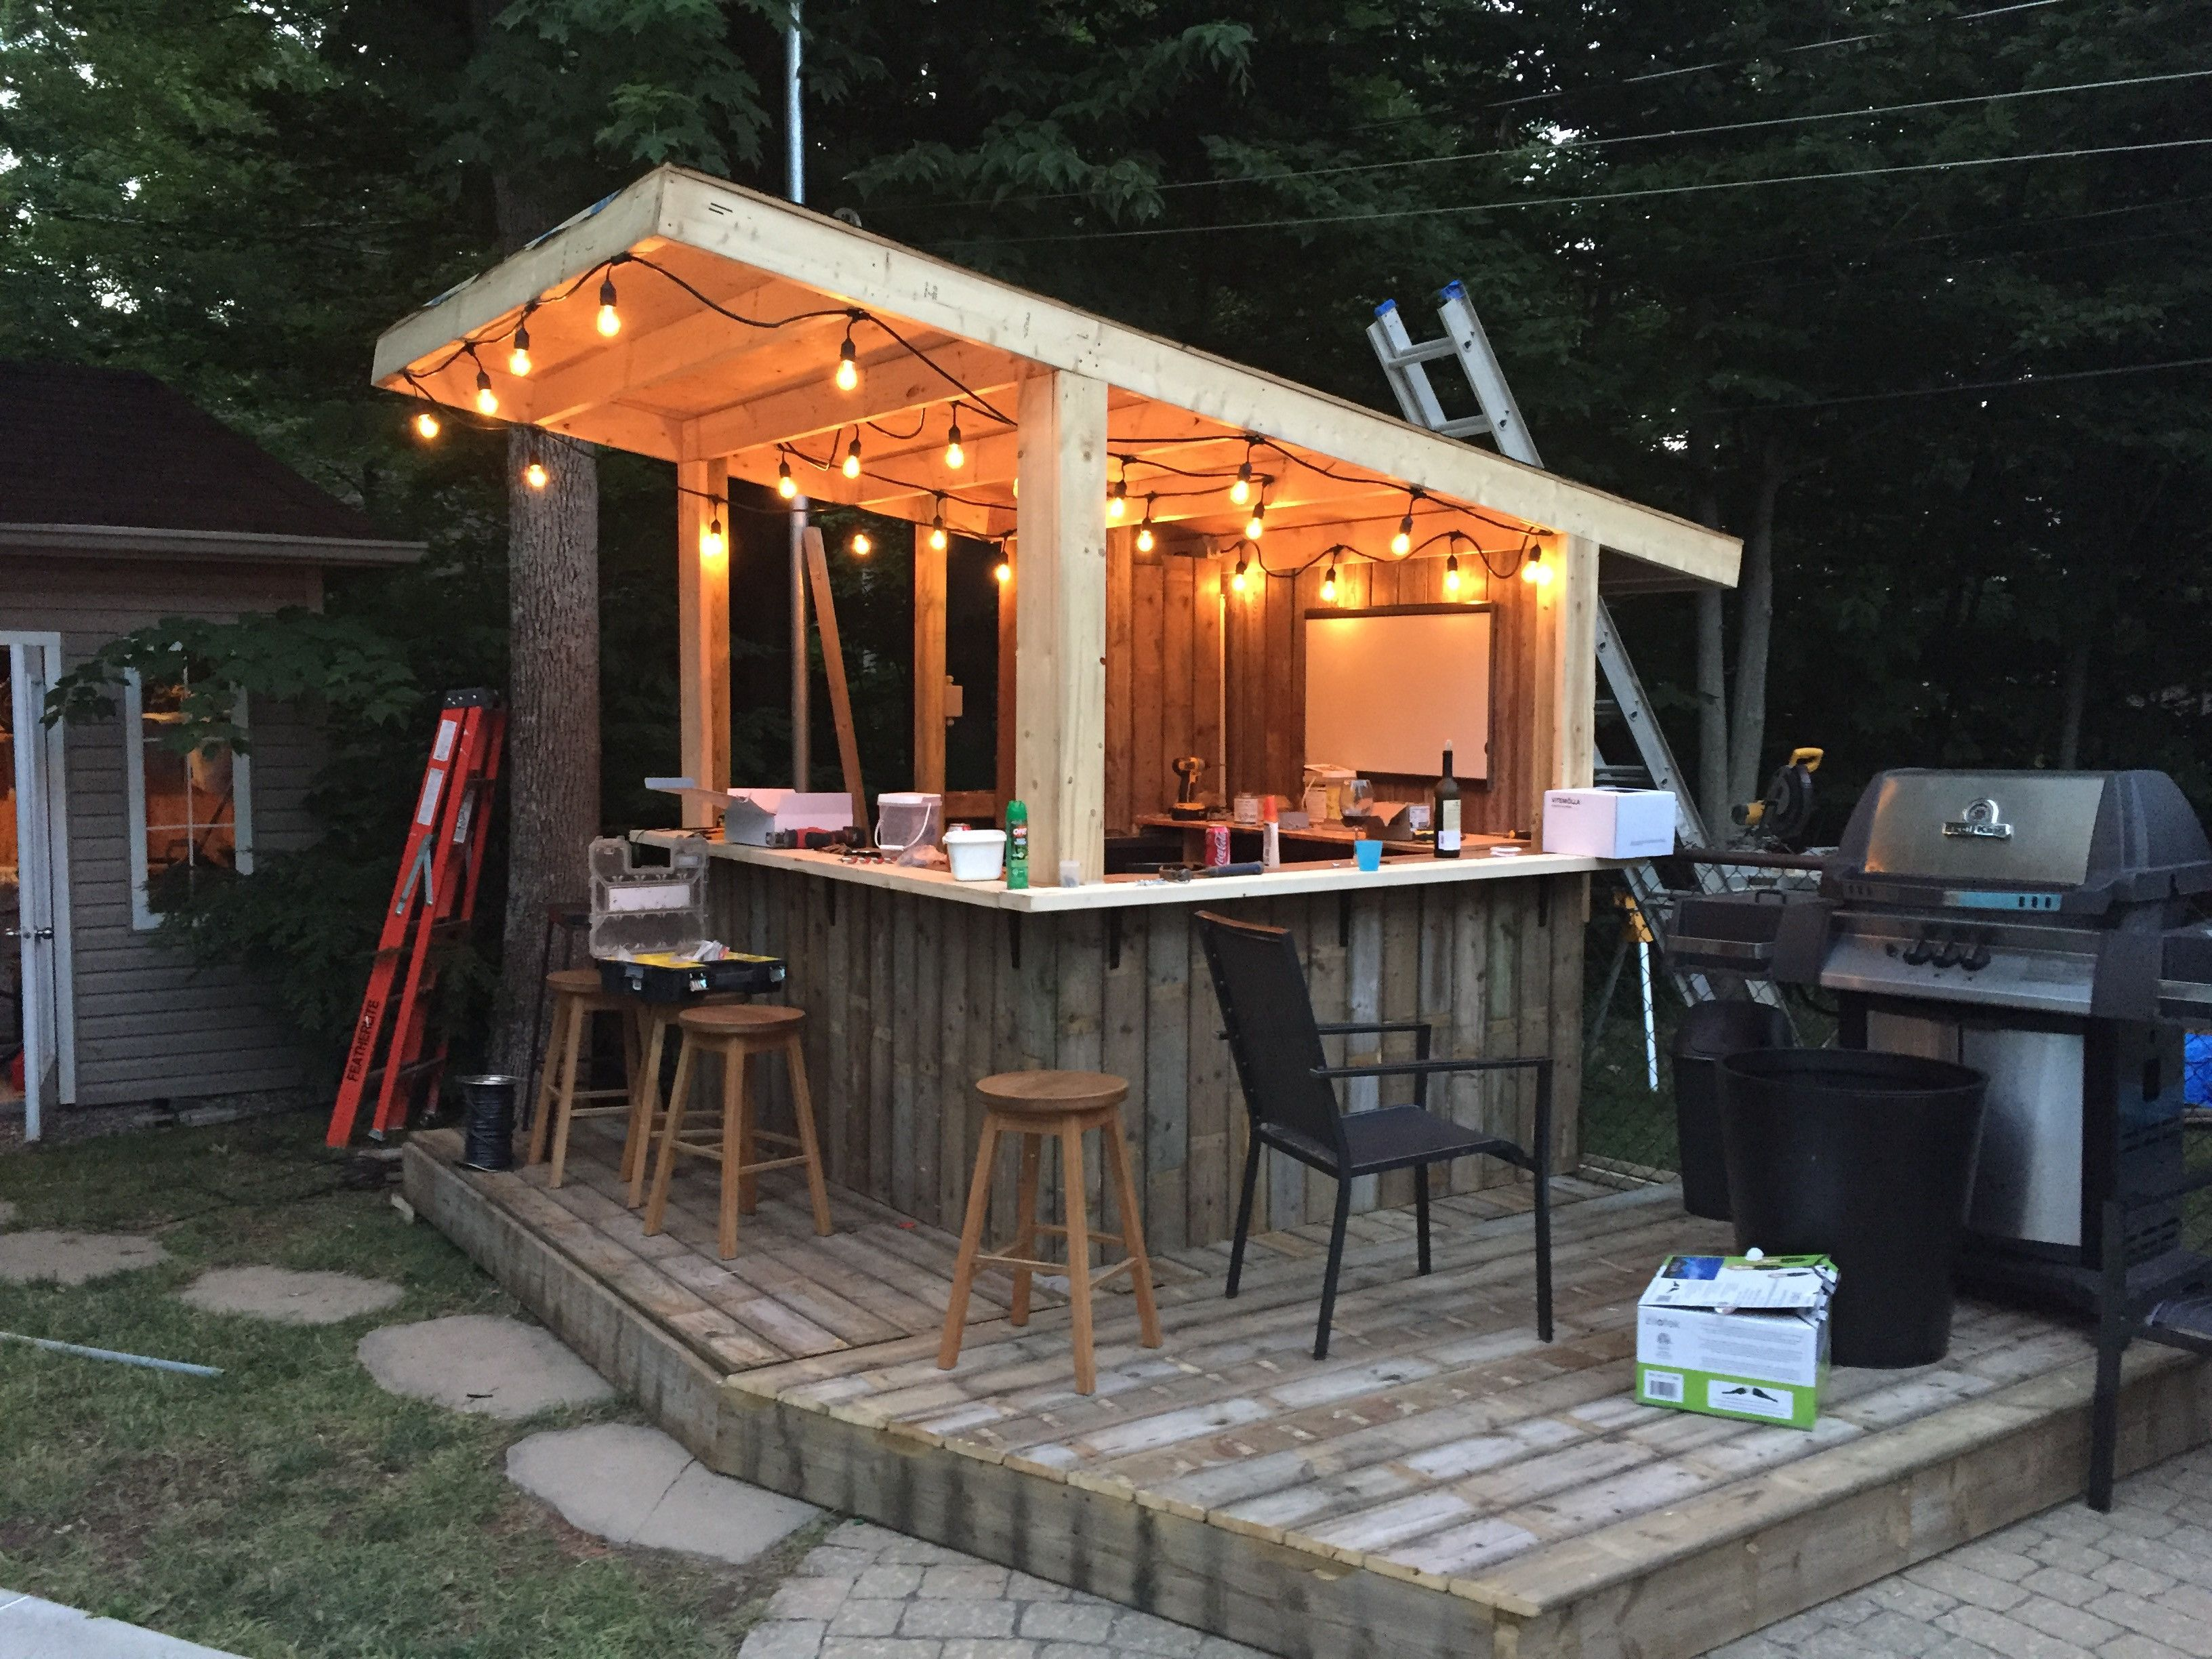 Outdoor Patio Bar Ideas New Cool Design Patio Bar Ideas Best 25 From Game Room Bar Ideas Source Outdoor B Outdoor Patio Bar Tiki Bars Backyard Diy Outdoor Bar